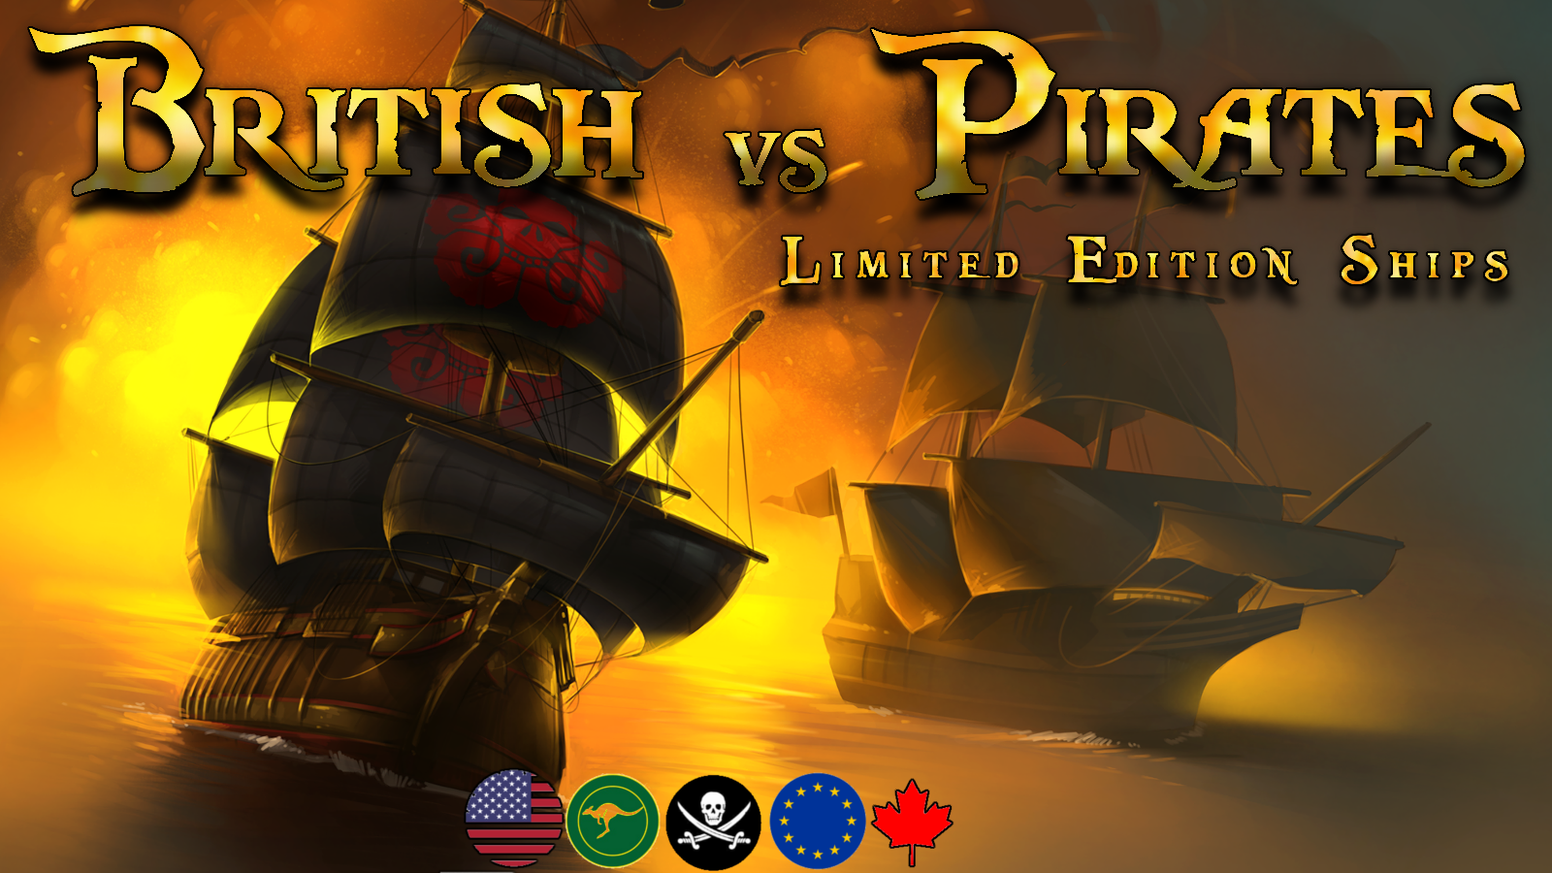 Epic Limited Edition Ship Cards for British vs Pirates!